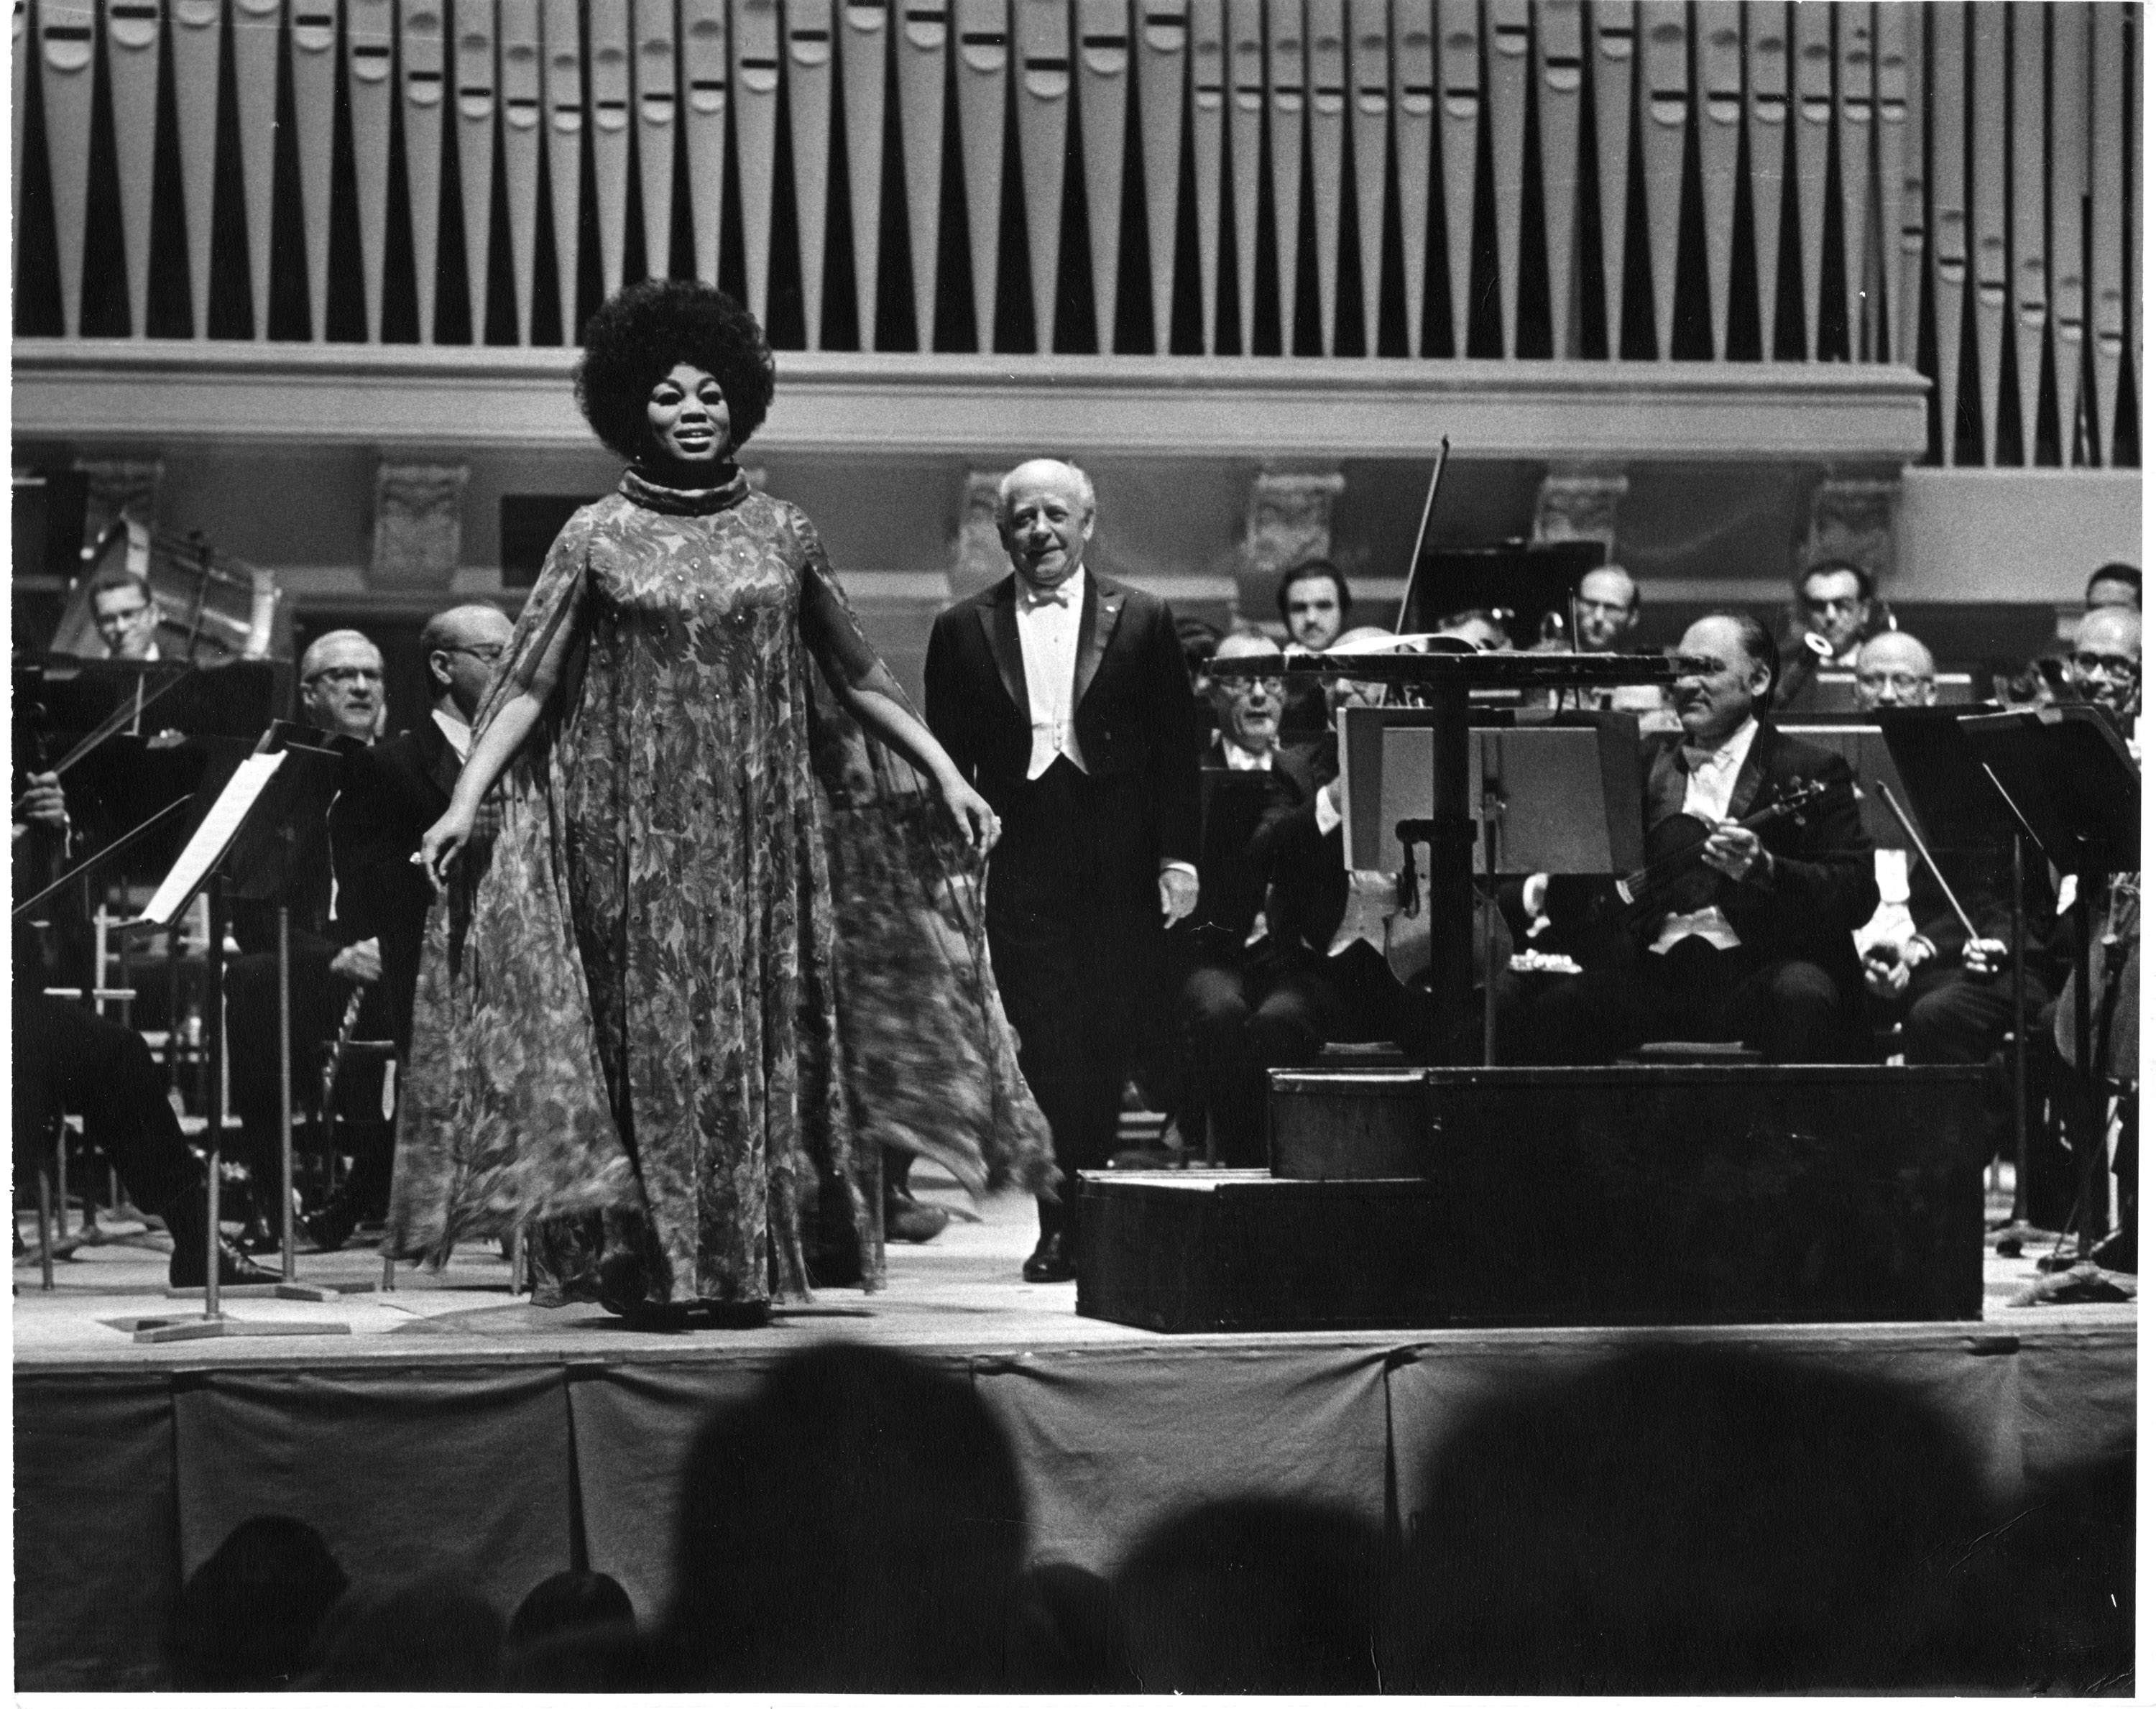 Leontyne Price, soprano; Eugene Ormandy, conductor; The Philadelphia Orchestra in Hill Auditorium; Opening Night May Festival, April 29, 1971 image